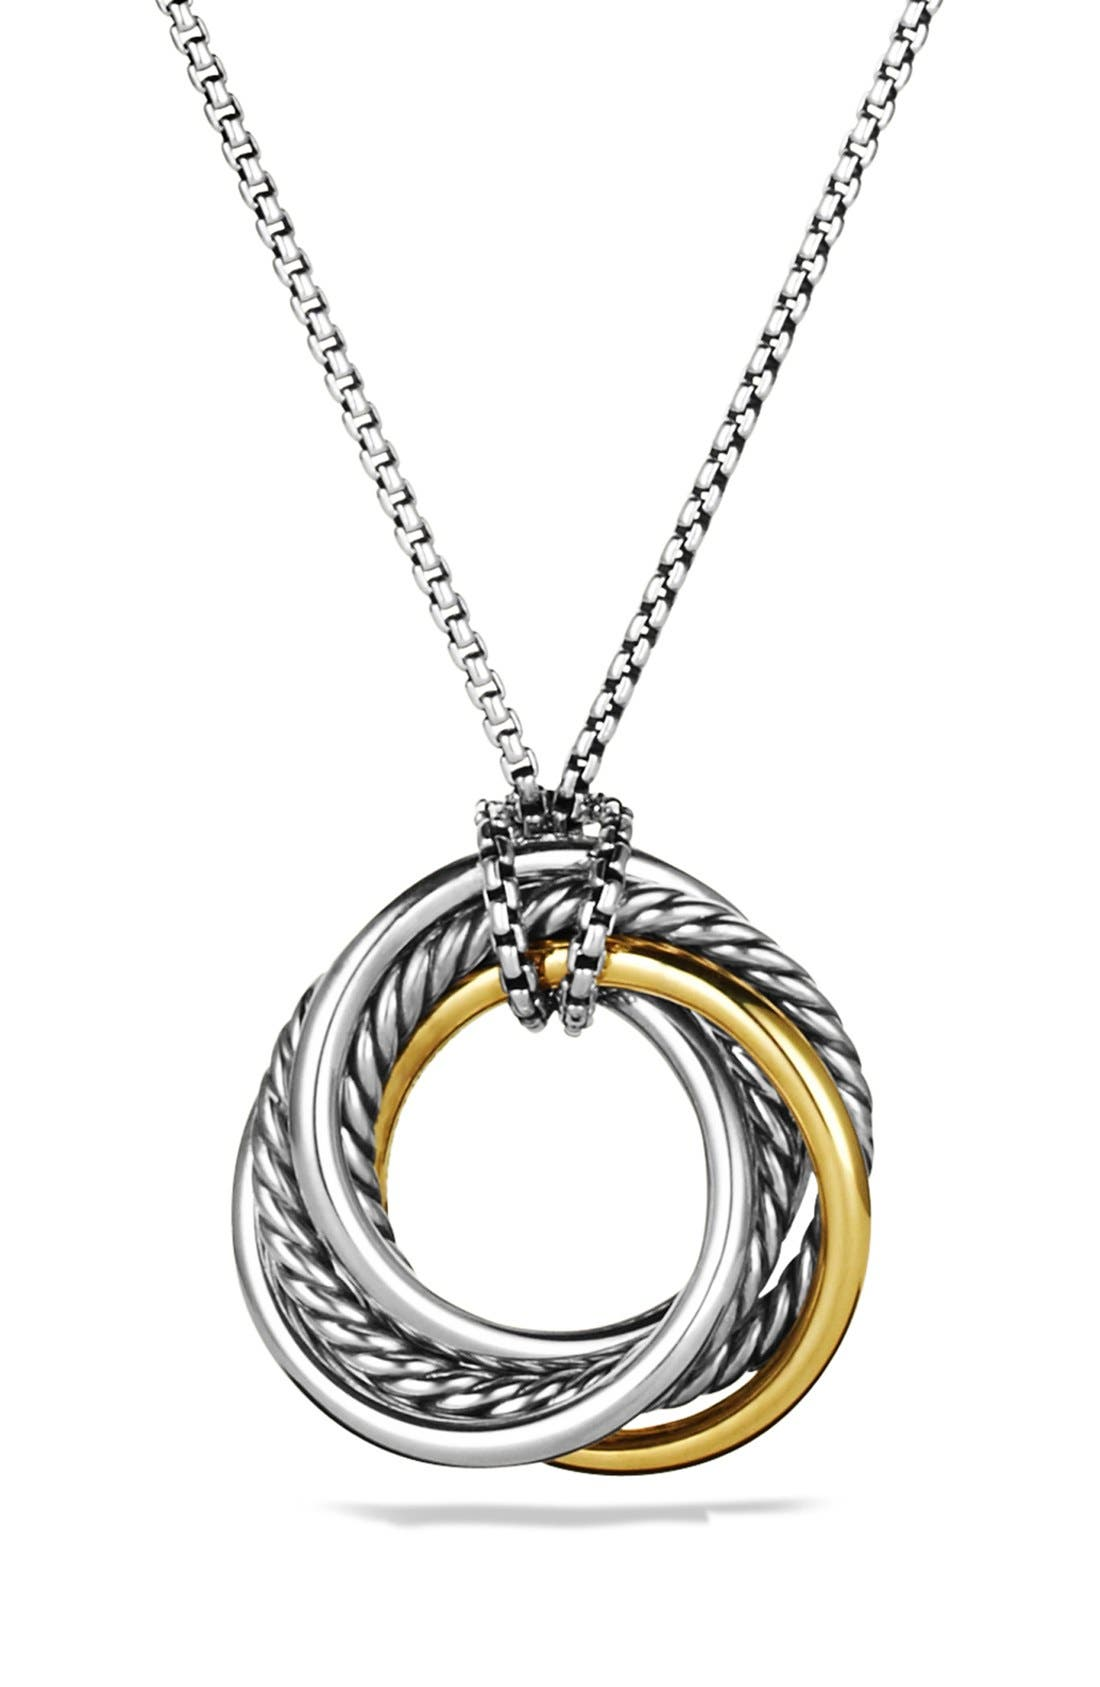 DAVID YURMAN 'Crossover' Small Pendant with Gold on